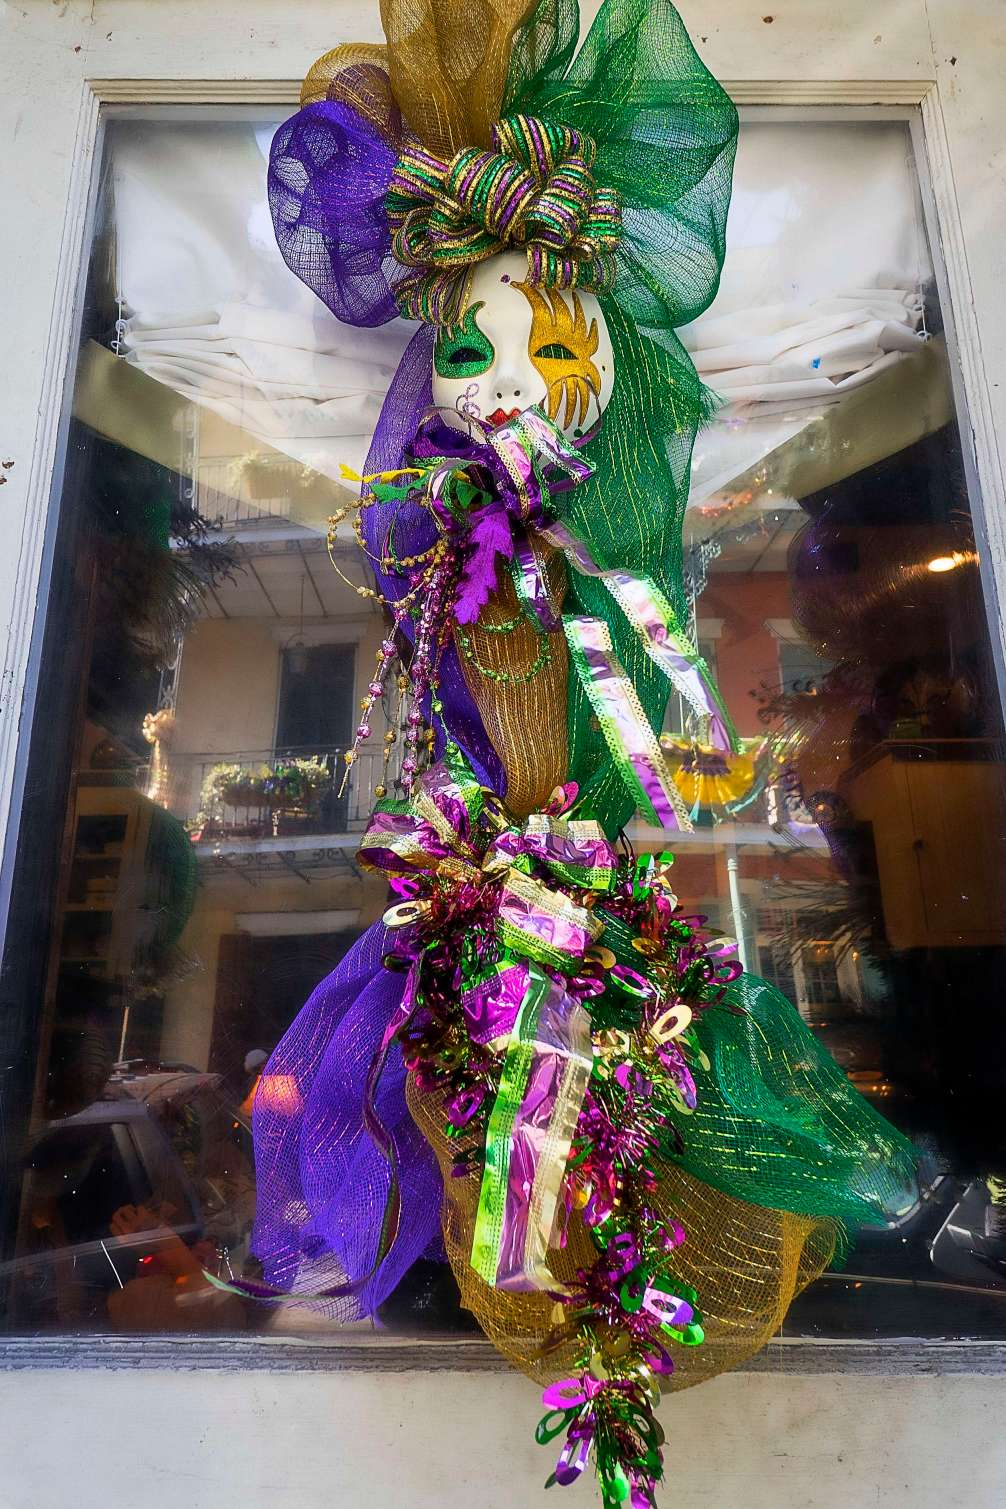 Mardi Gras decorations and reflections.